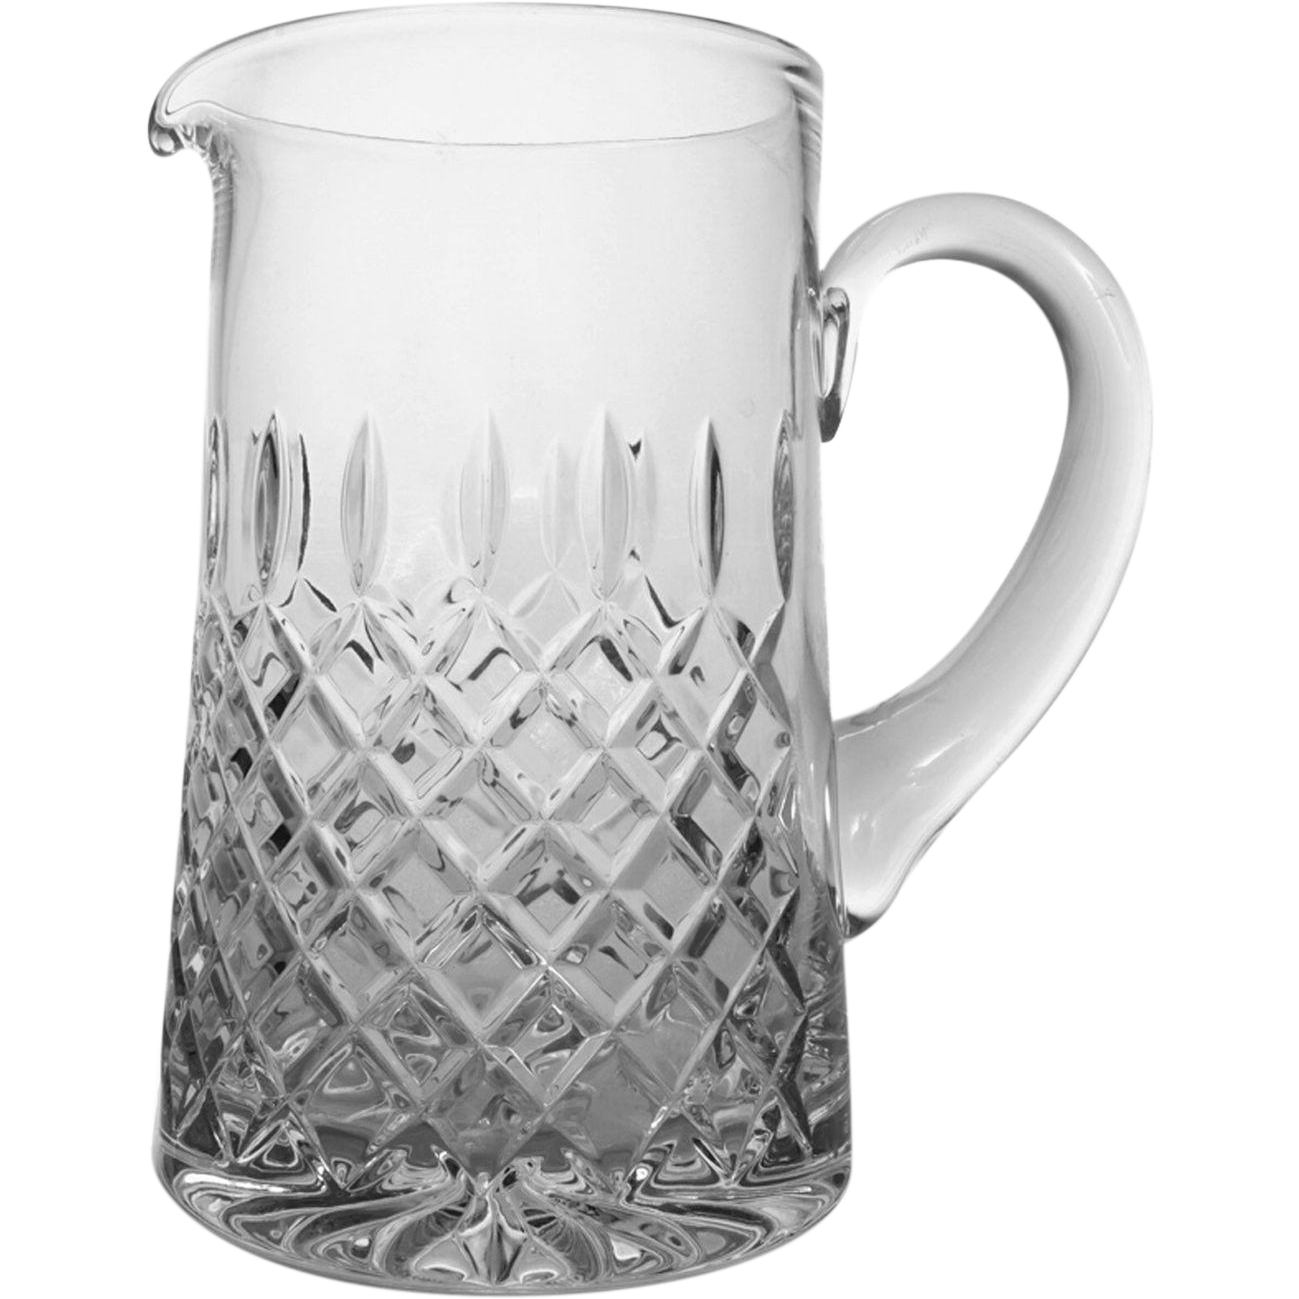 Cut Cristal Pitcher Marked Atlantis - 20th Century, Portugal